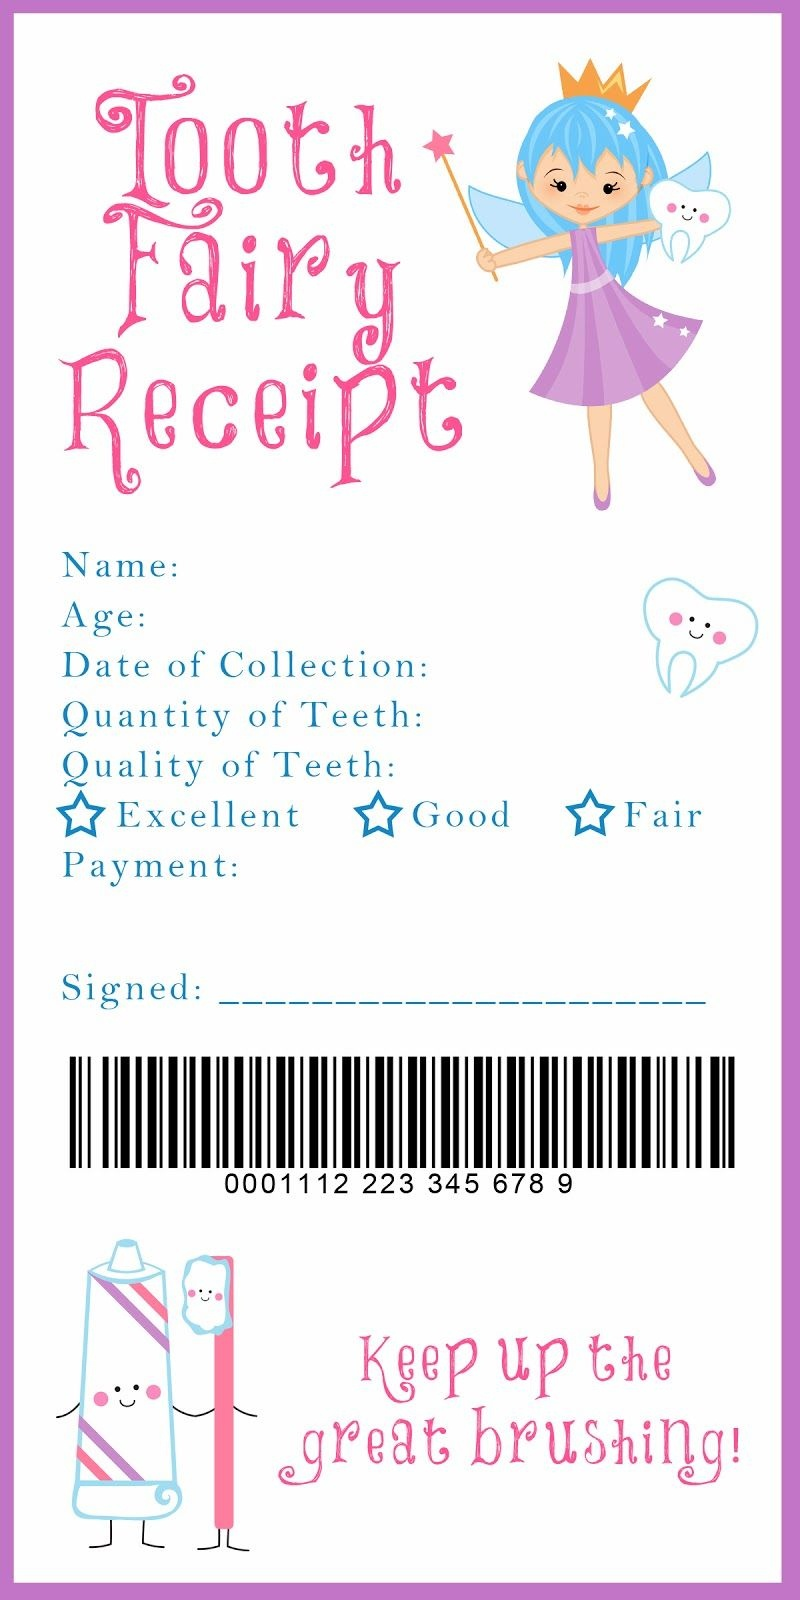 Tooth Fairy Receipt And Many Other Awesome Printables   Kids   Tooth - Free Printable Notes From The Tooth Fairy